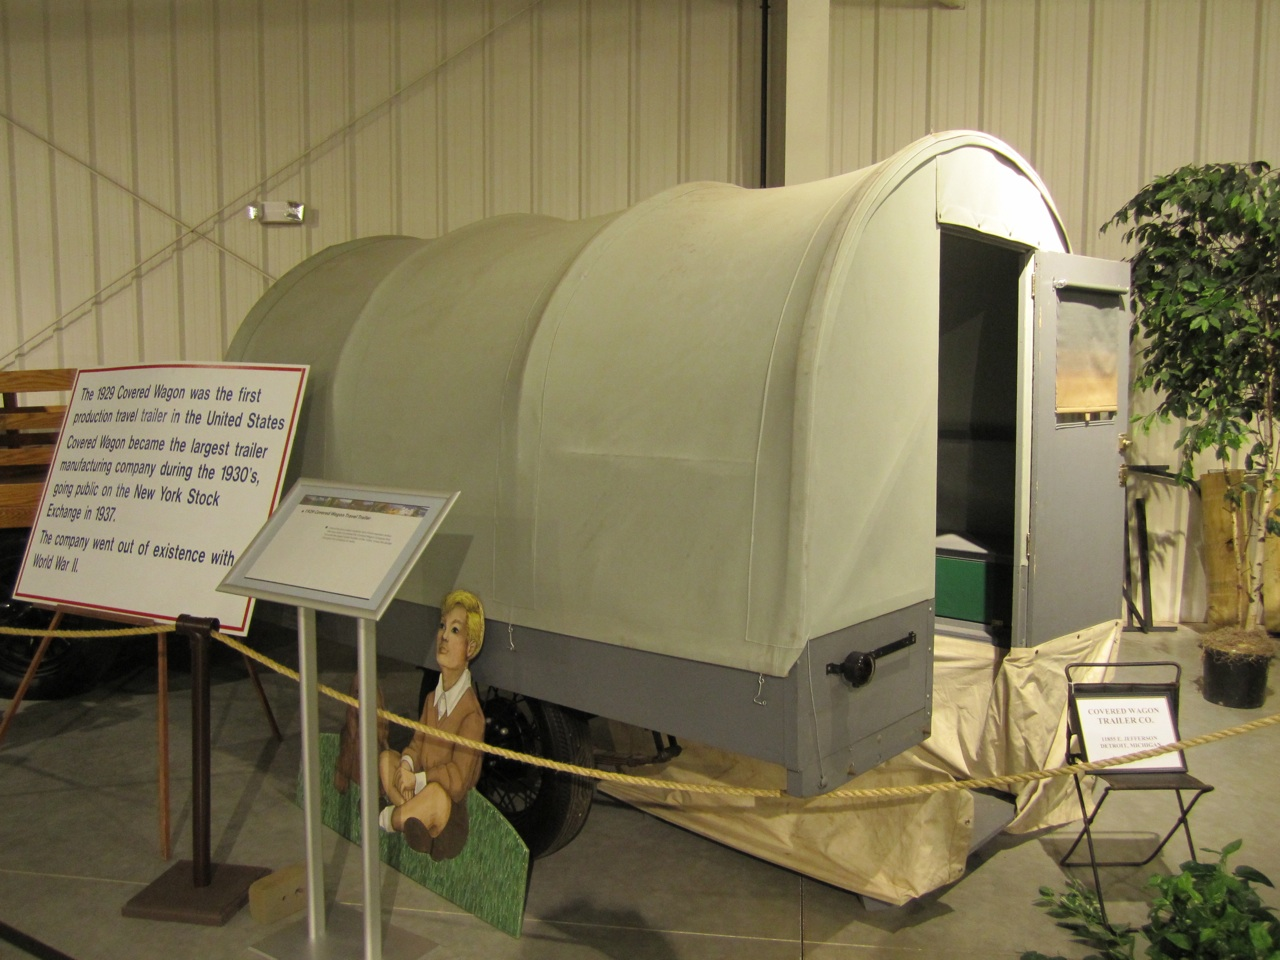 1929 Covered Wagon. This Was The First Production Travel Trailer Made In The US.  The Company Went Out Of Existence With WWII.